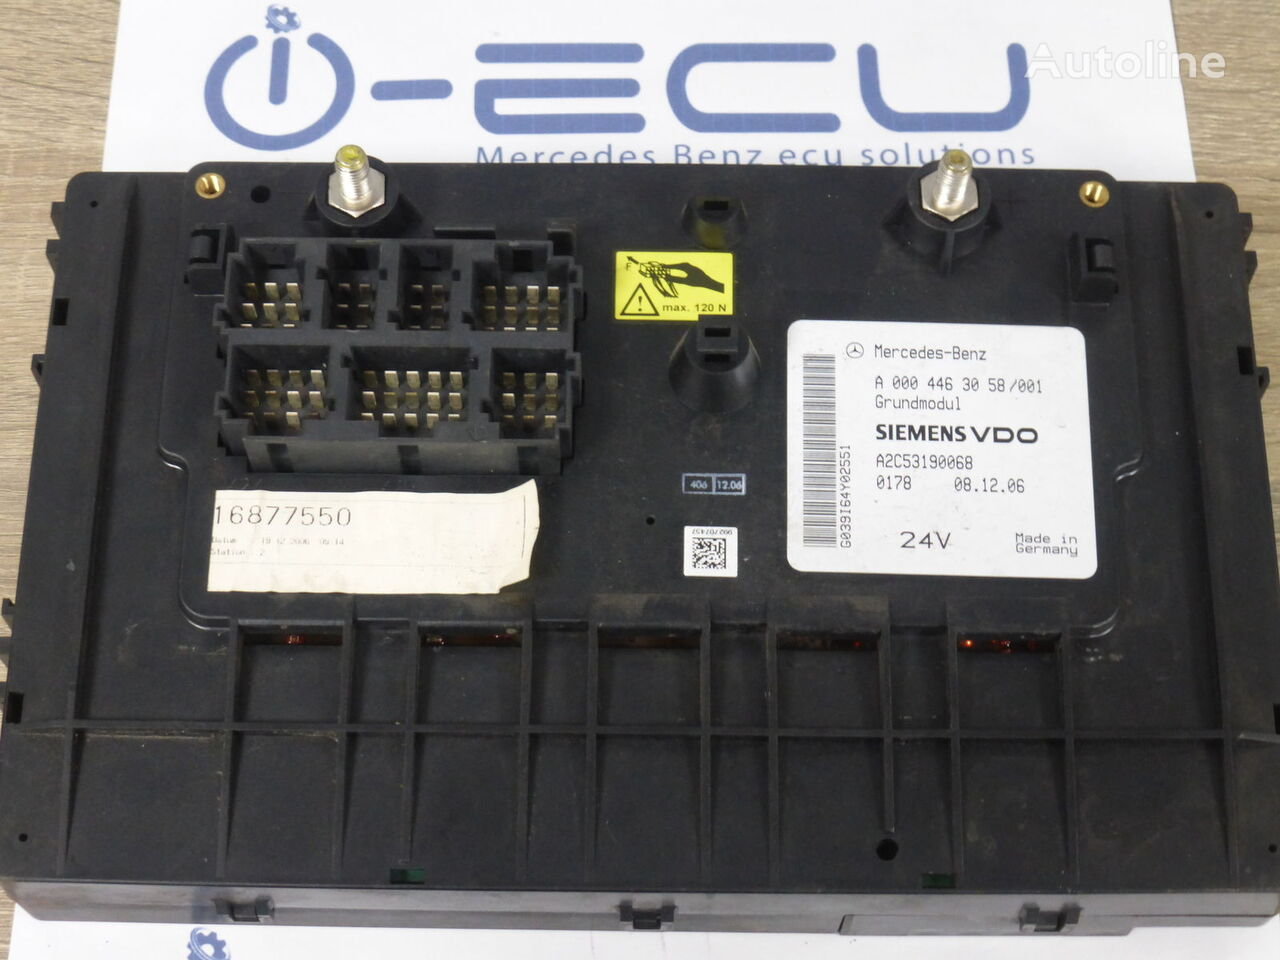 GM ACTROS A 0004463058 (GM A 0004463058) fuse block for MERCEDES-BENZ ACTROS  truck for sale, WU17137Autoline